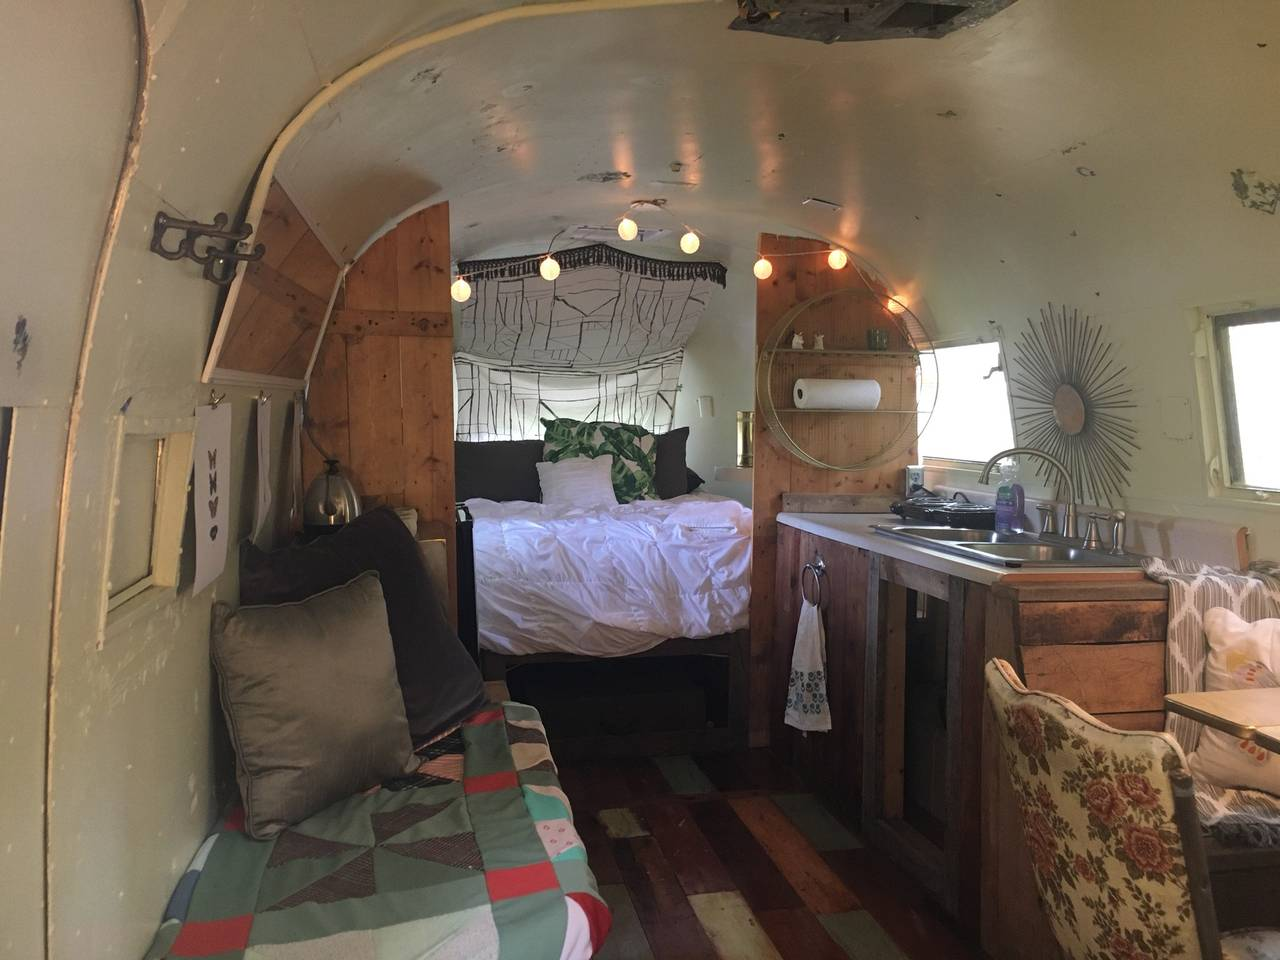 Prayerstream : Vintage Inspired Airstream Getaway - $40 a night (open for summer season)2 guests, 1 bed, kitchennette, 2 shared baths near byClick here for Airbnb listing for booking